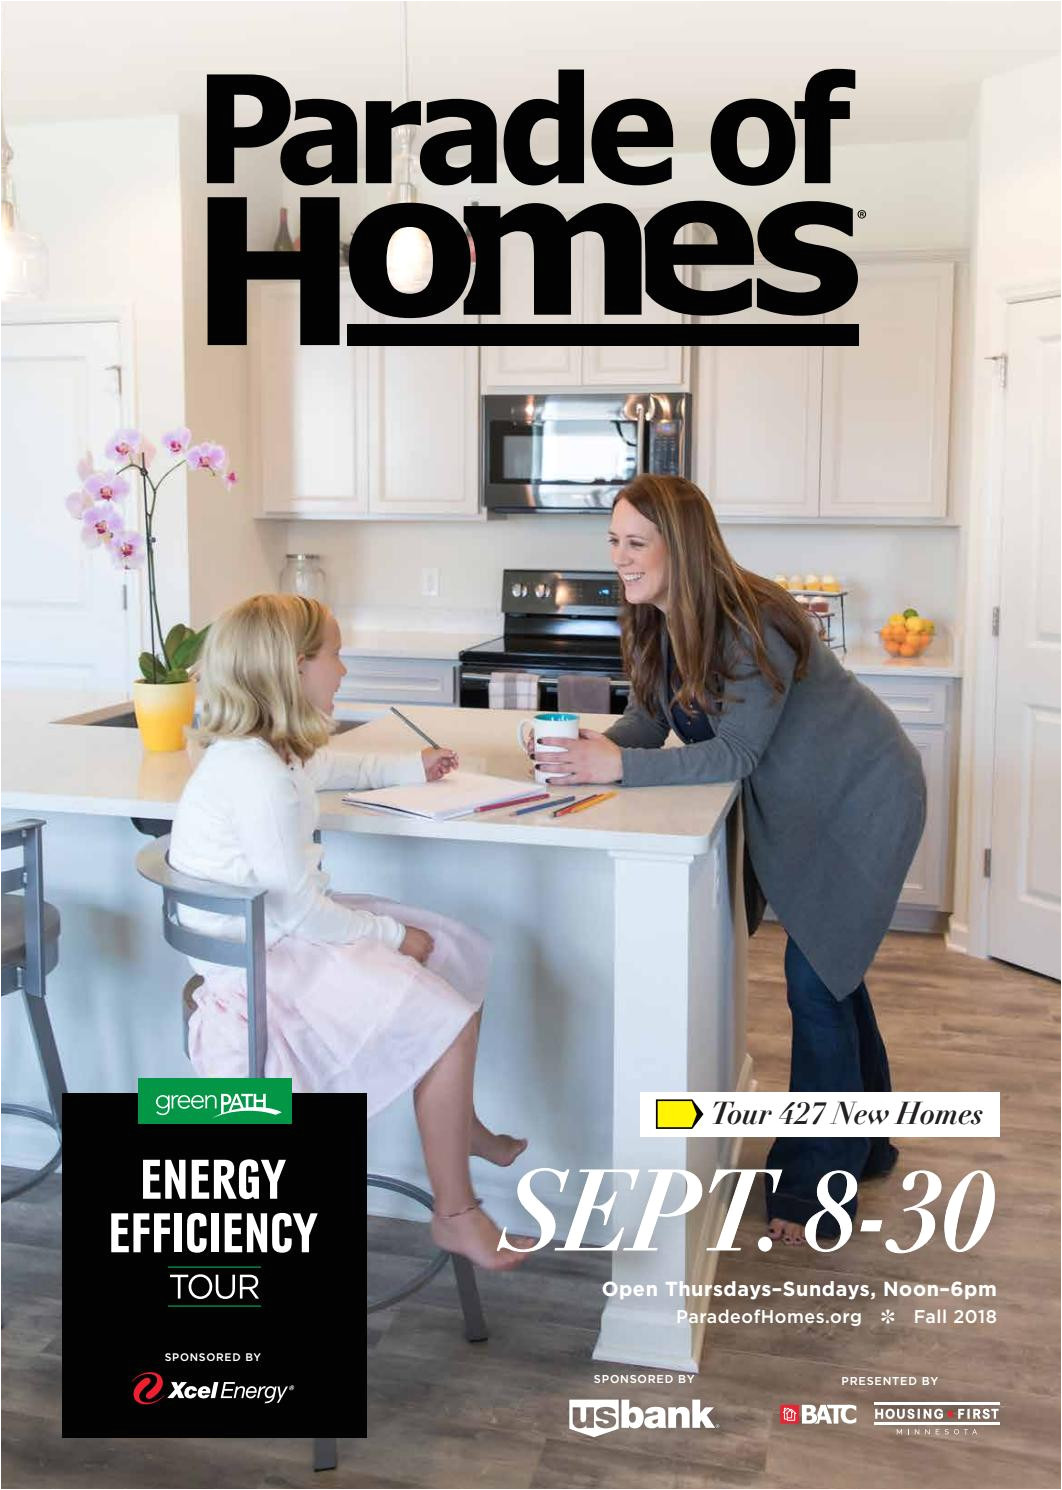 2018 fall parade of homes sm guidebook by batc housing first minnesota issuu